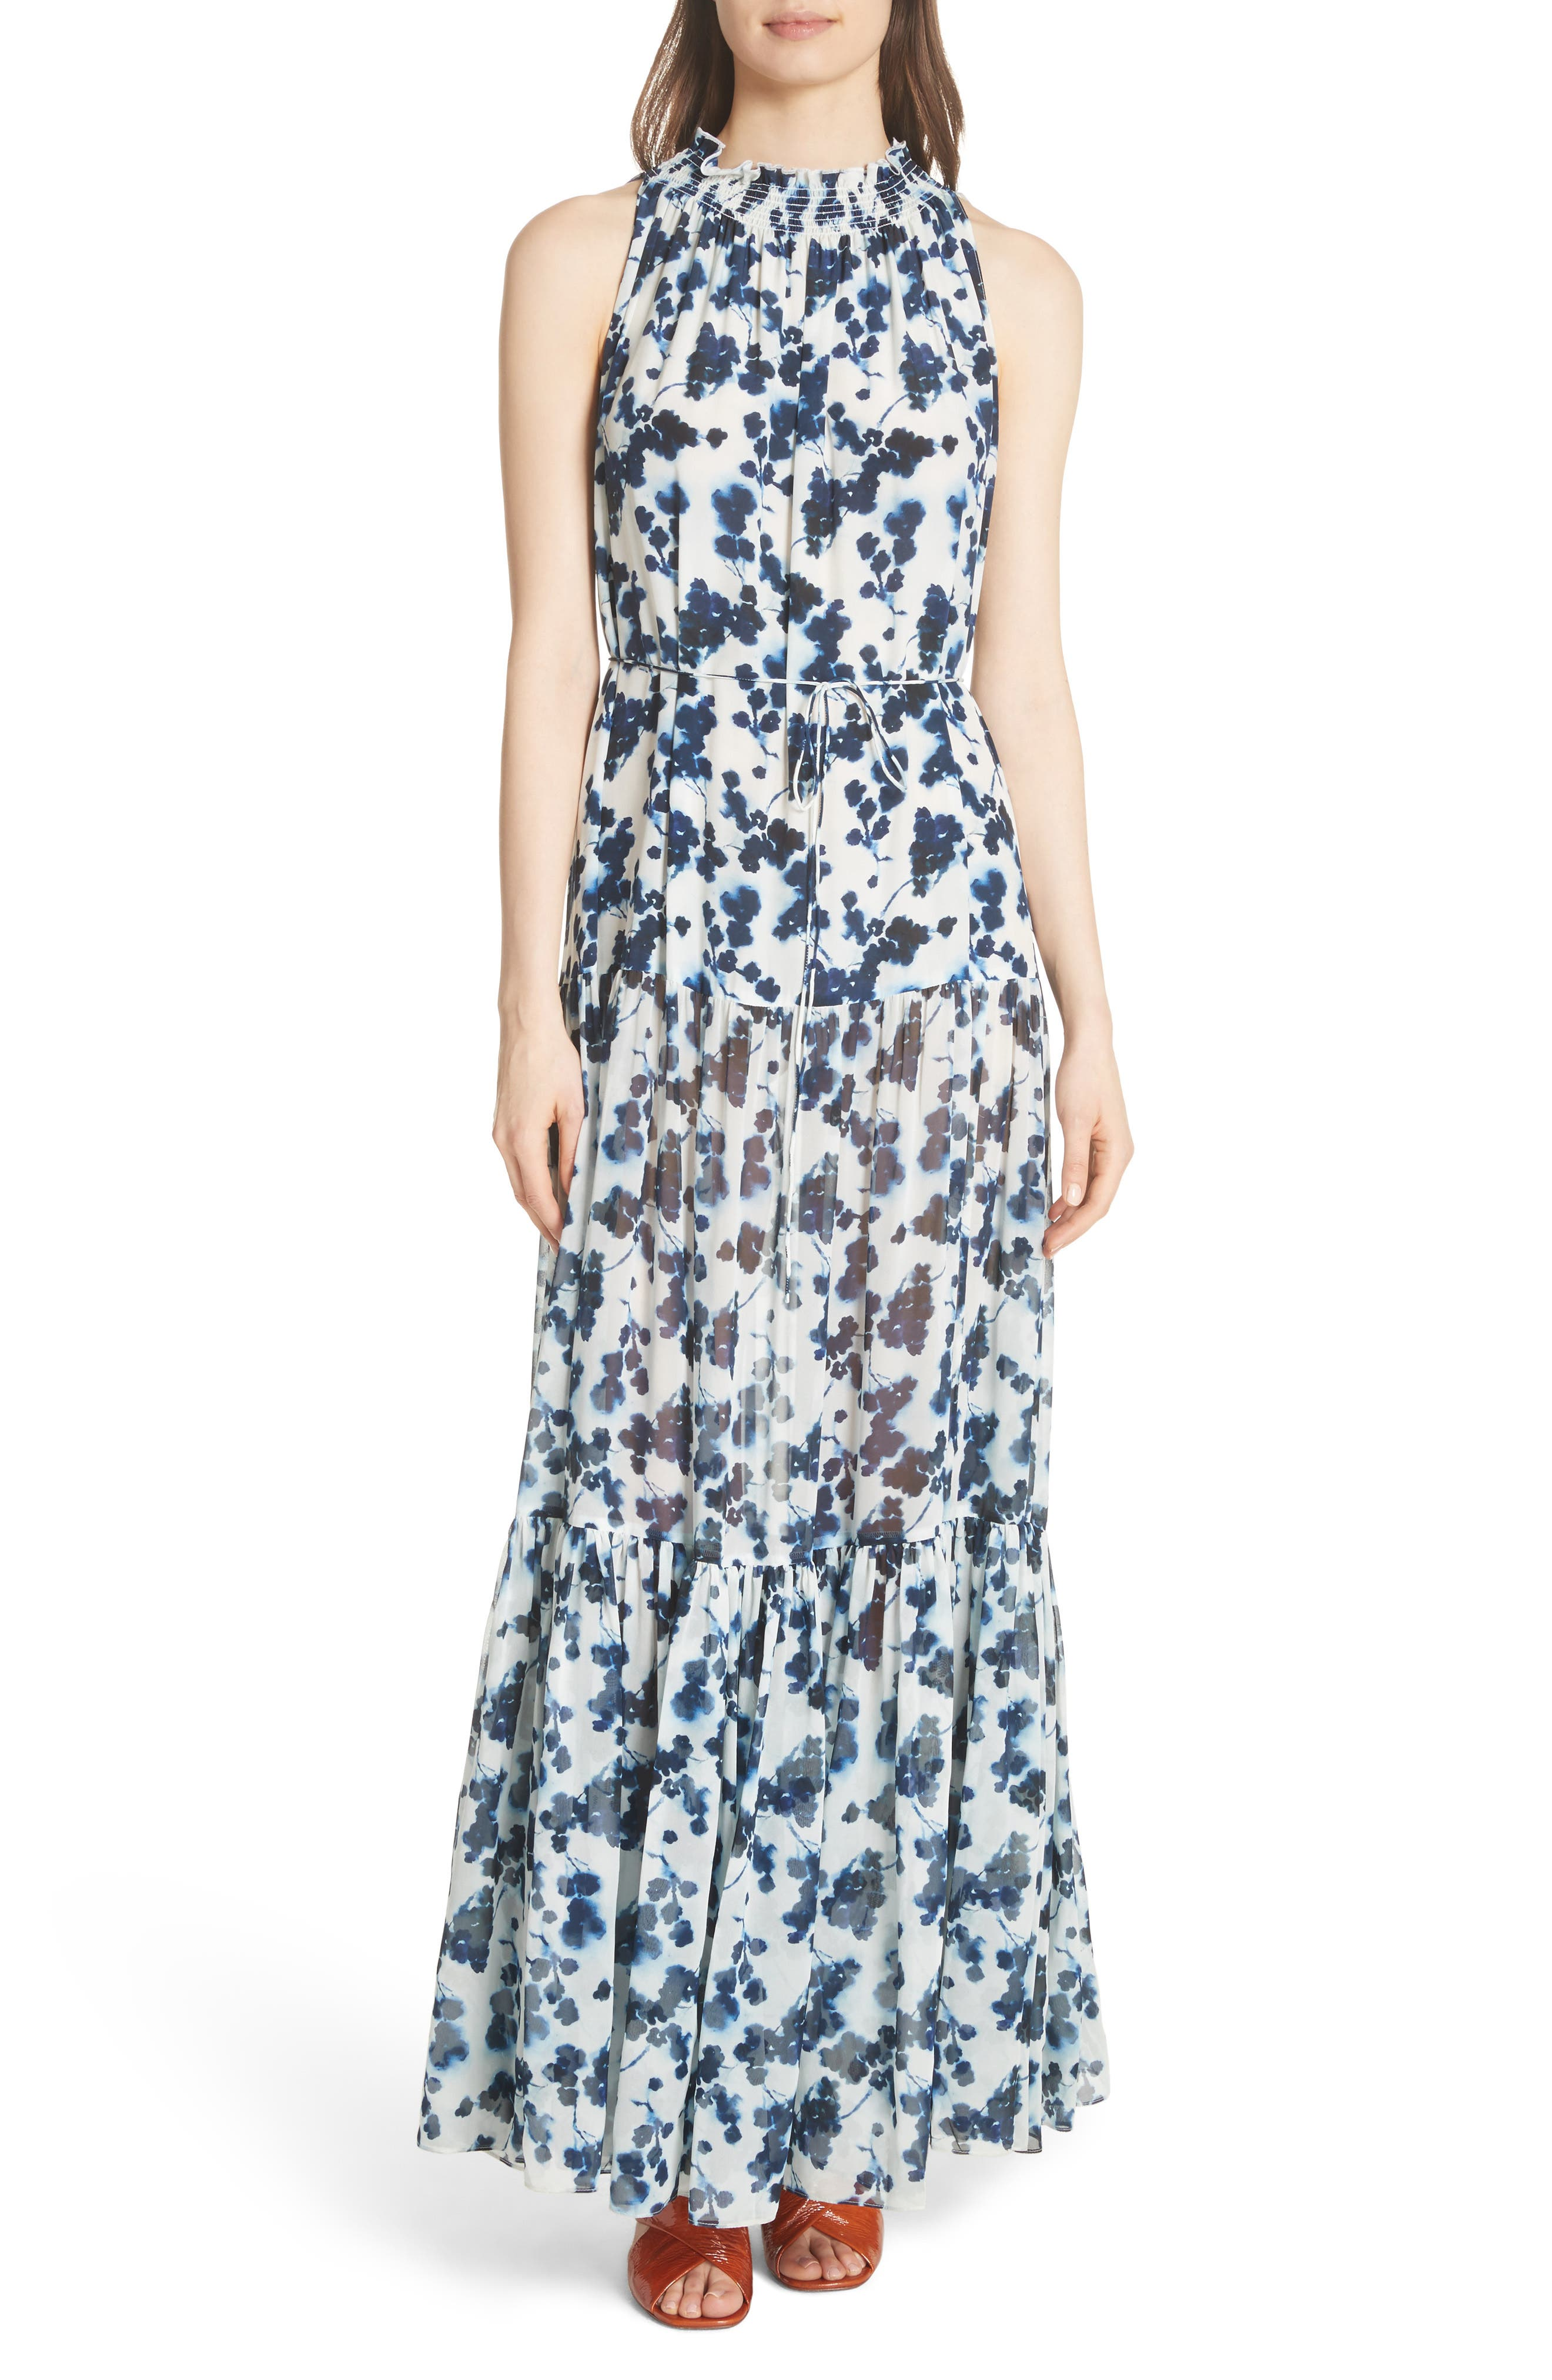 Elizabeth and James Lani P Floral Print Silk Dress